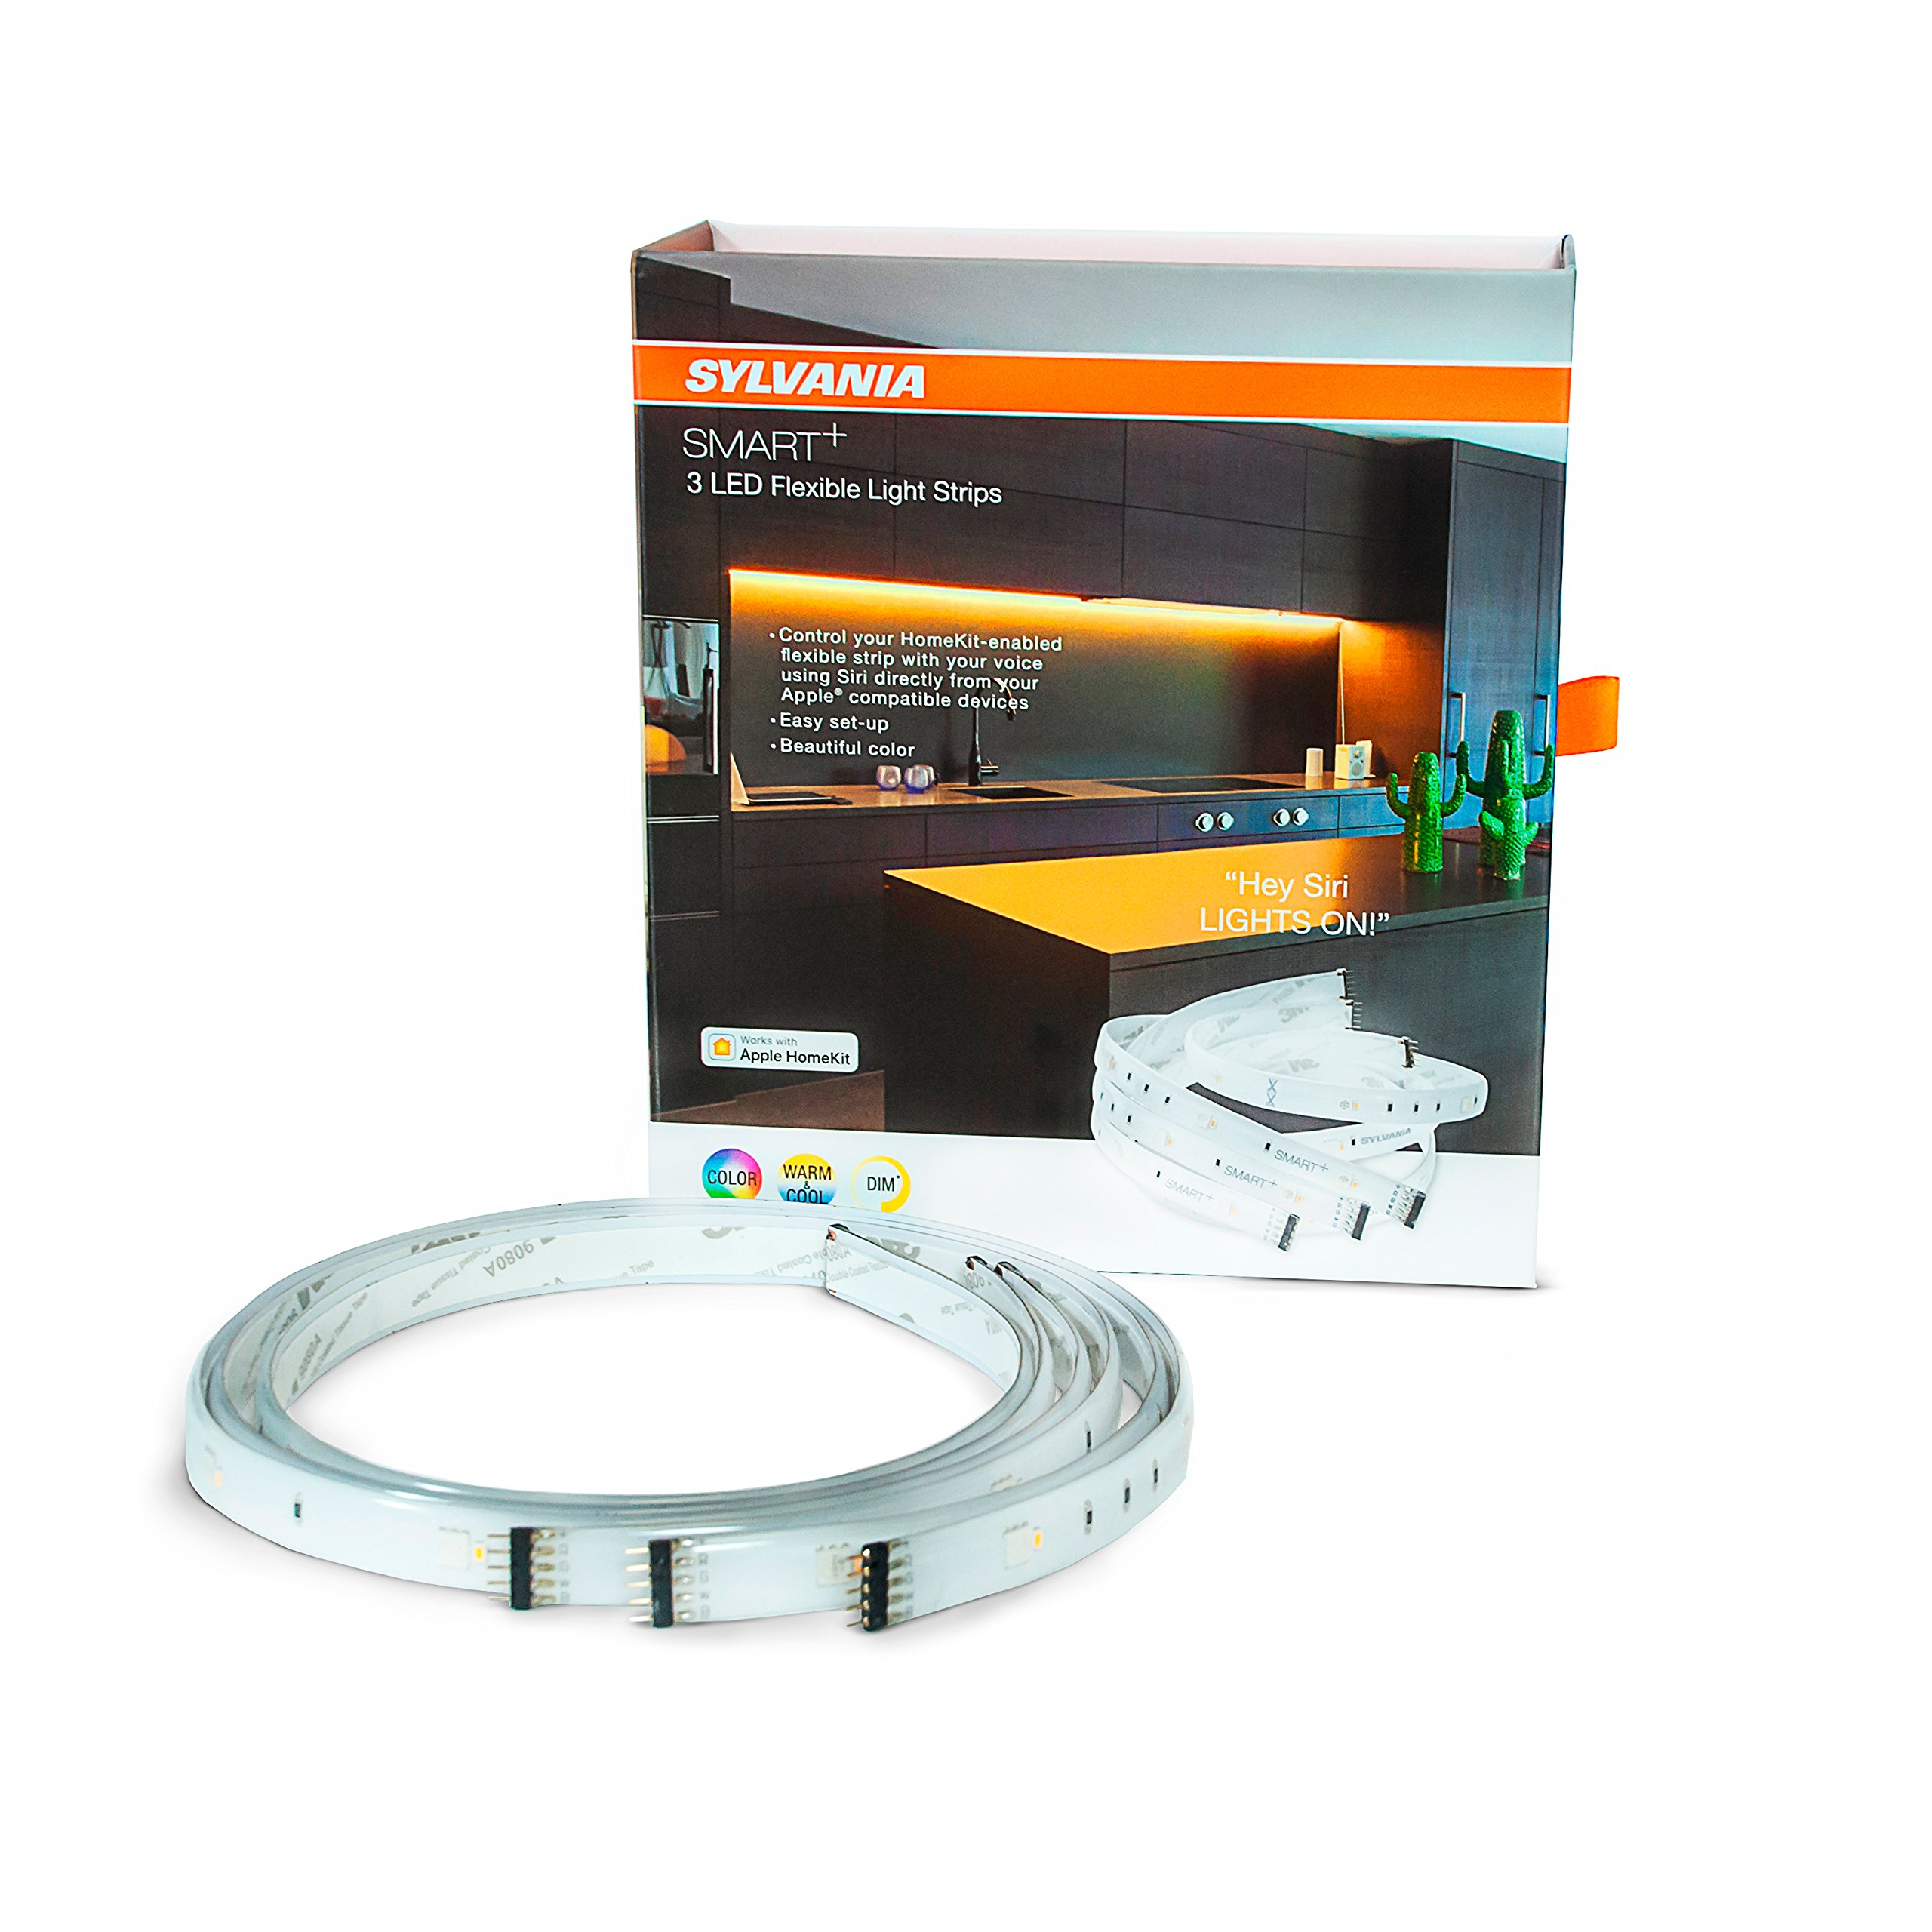 Sylvania Smart Home 74521 Full Color LED Flex Strip, Works with Apple HomeKit and Siri Voice Control, No Hub Required, Adjustable White